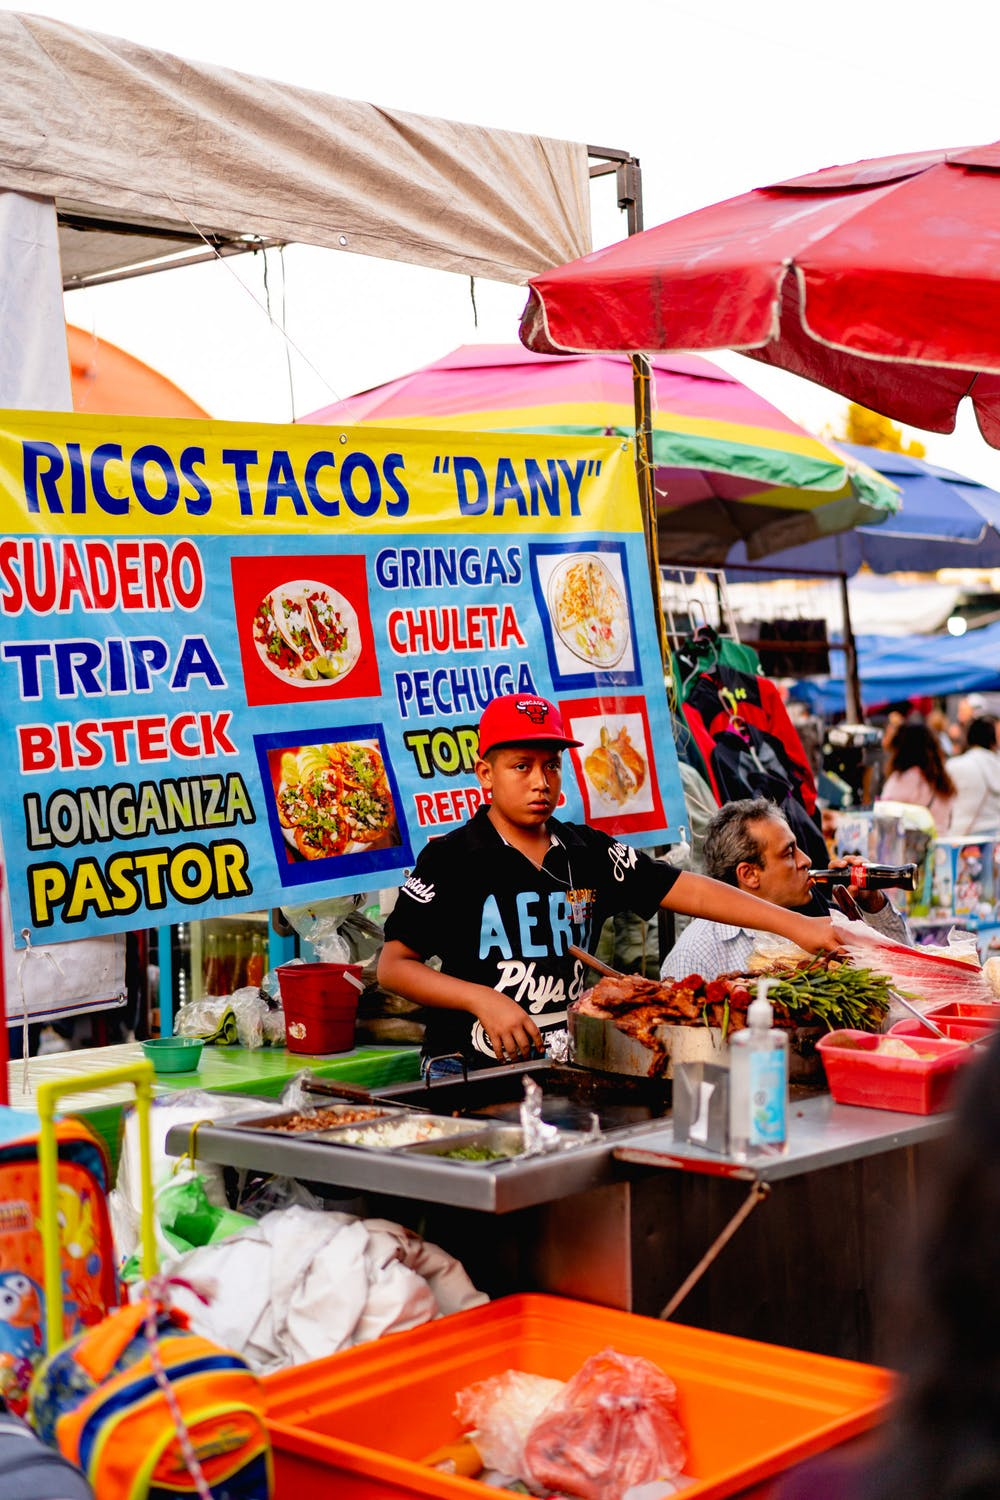 Mexican street food vendor selling ricos tacos at a Mexico City market